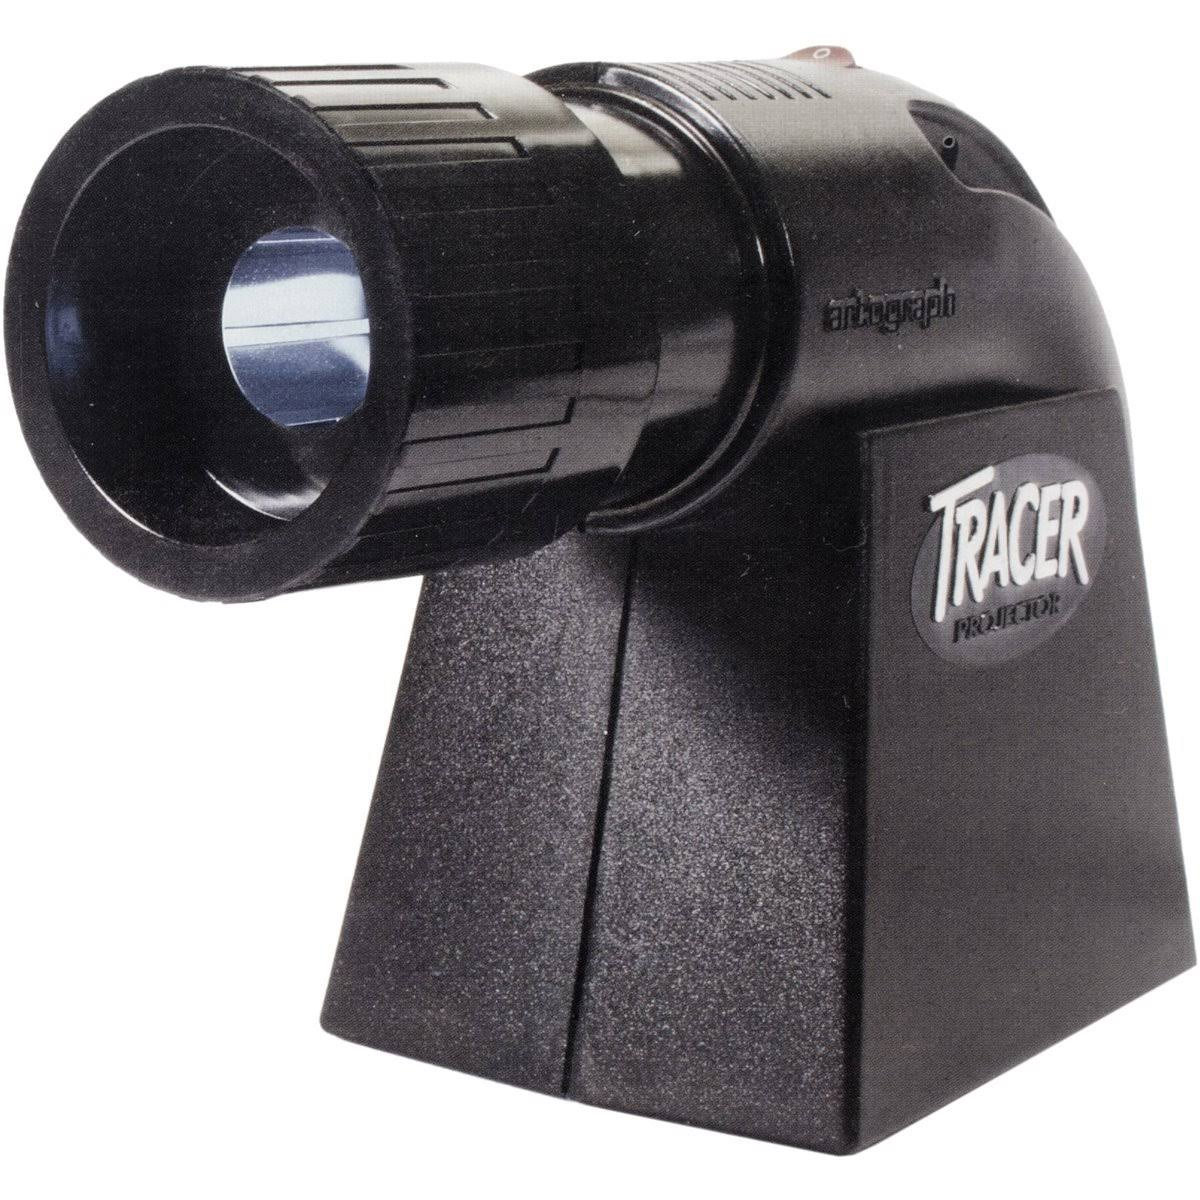 Artograph 219856 Tracer Projector and Enlarger